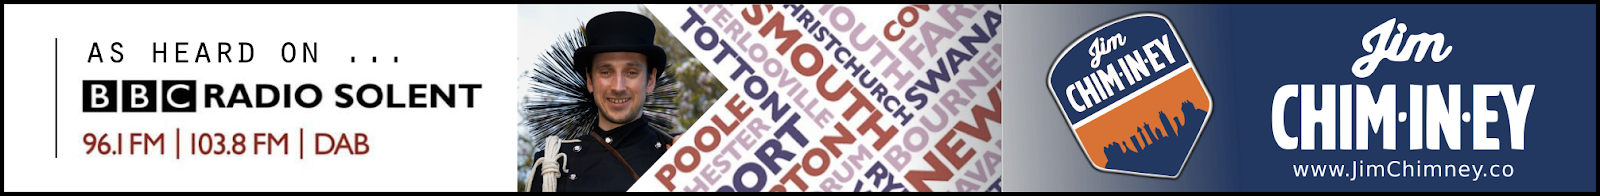 As Heard on BBC Radio Solent